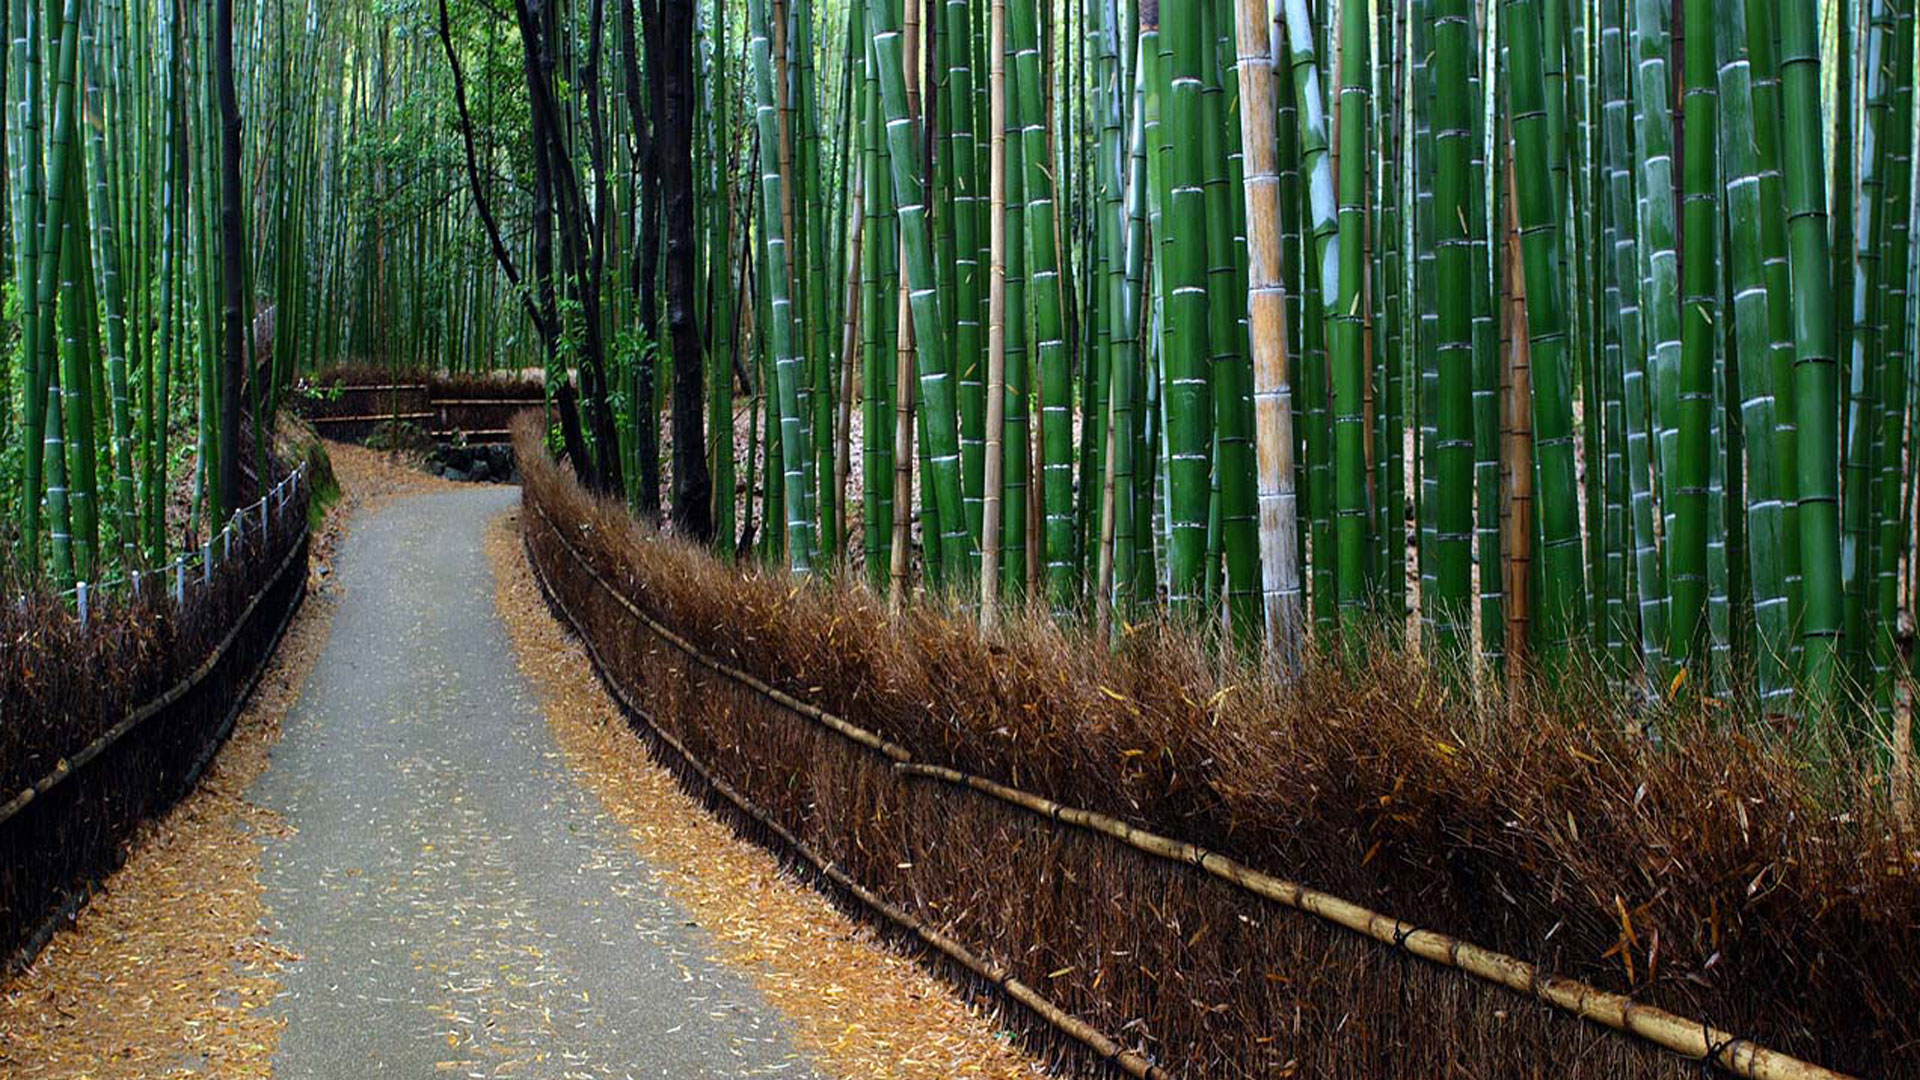 bamboo forest wallpaper